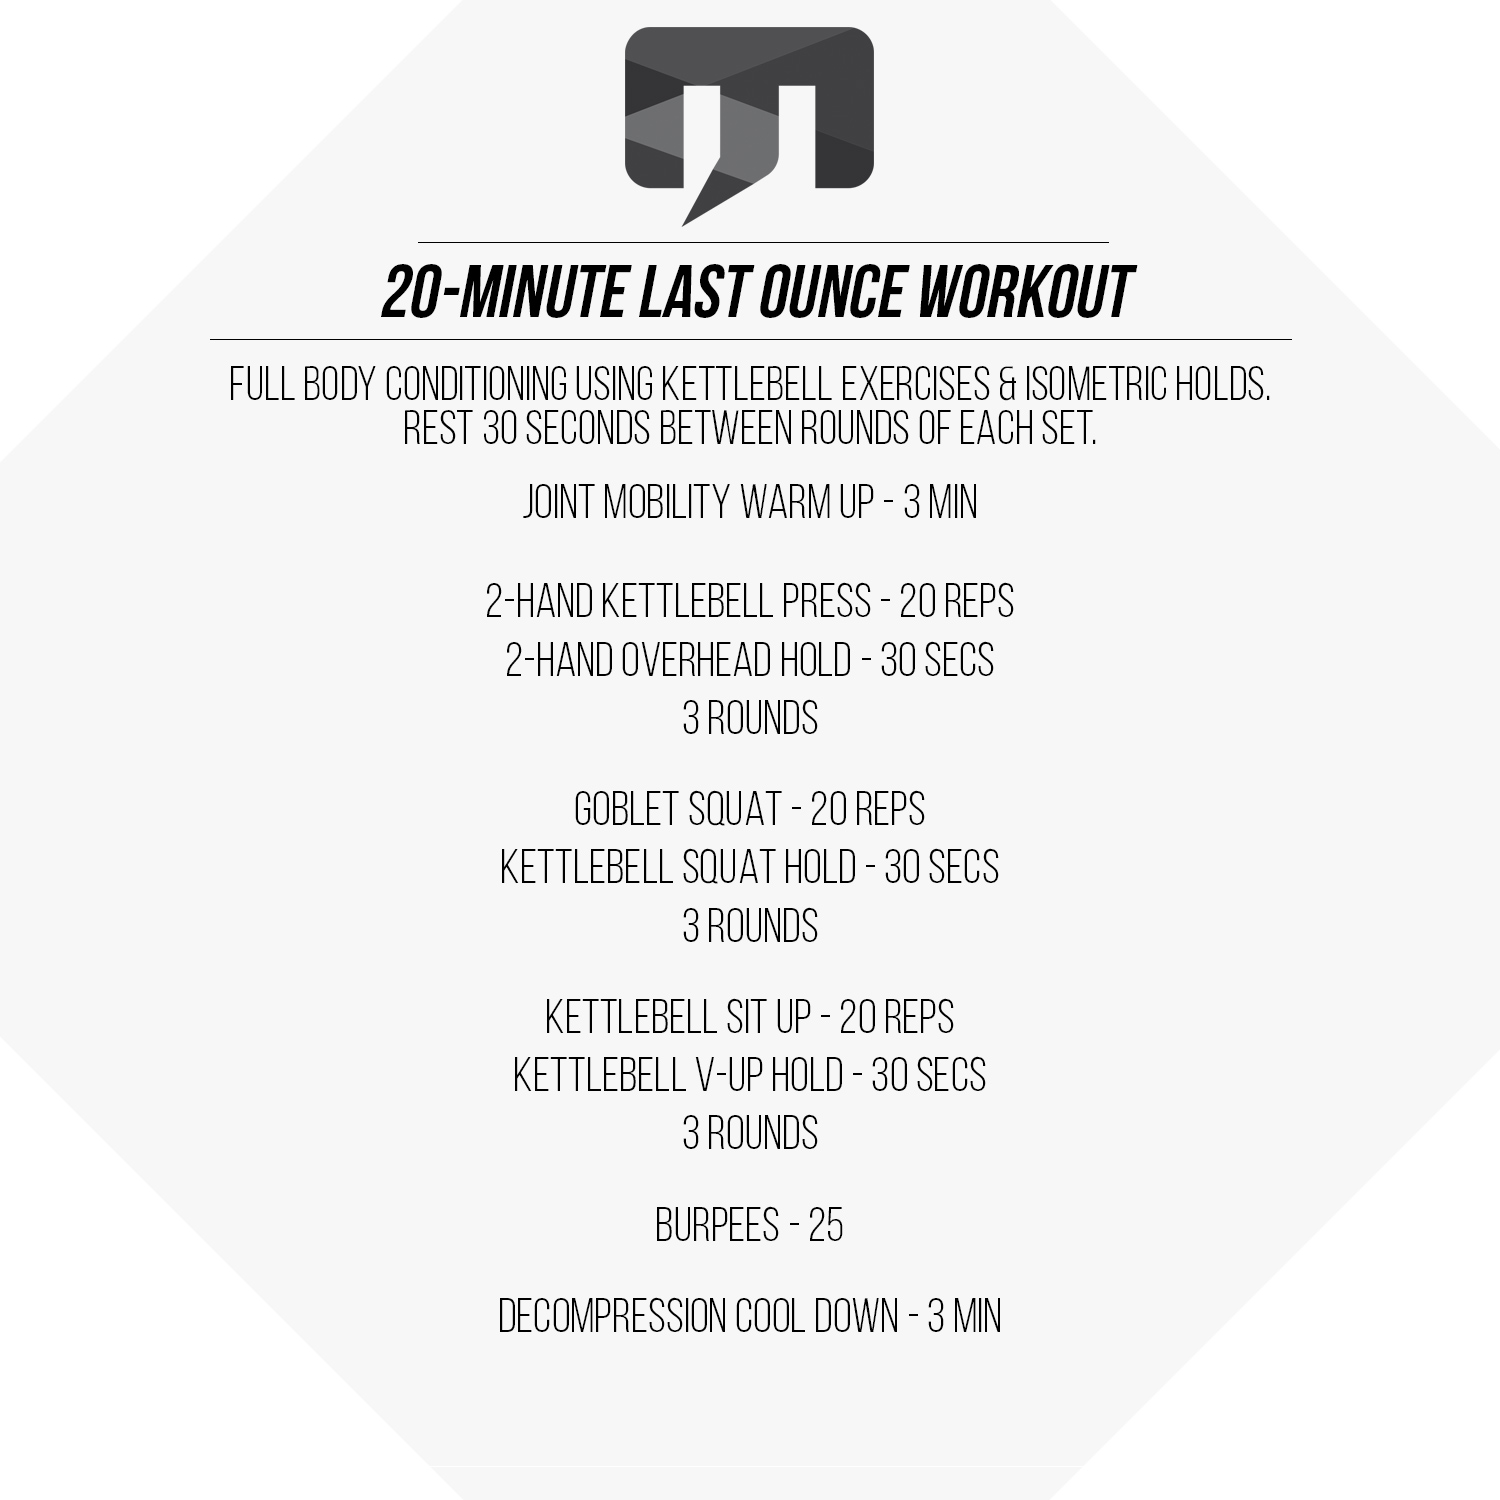 20 Minute Double Kettlebell Workout: 20-Minute Last Ounce Kettlebell Workout